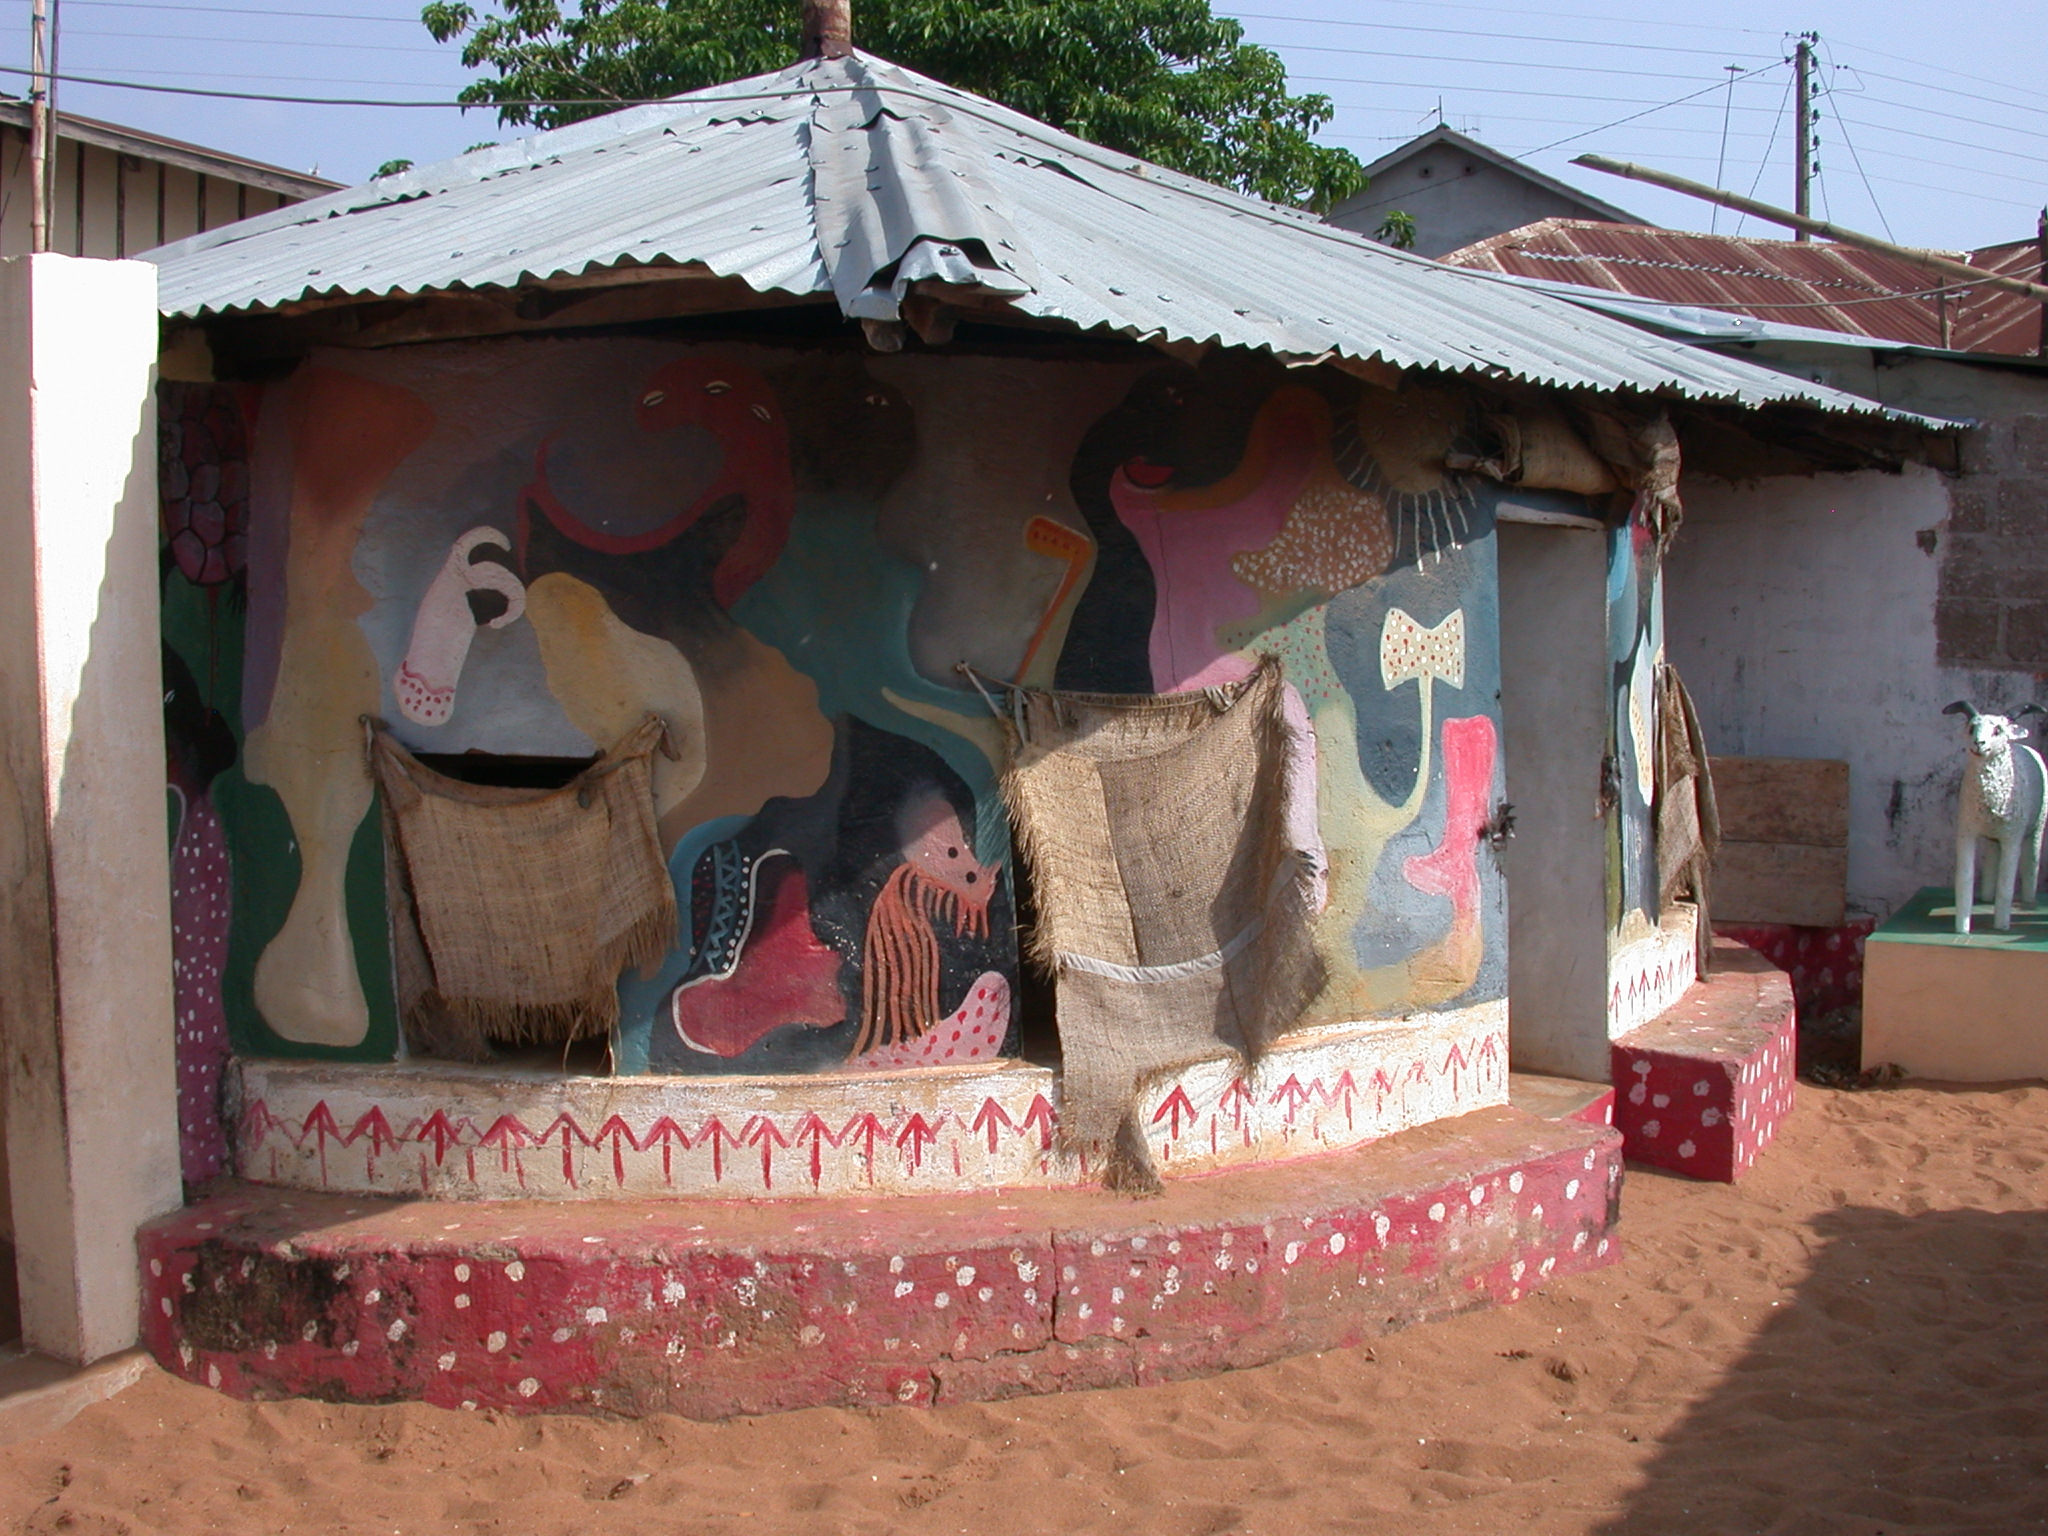 Decorated Interior Structure, Daagbo Hounon Dodo Palace, Ouidah, Benin